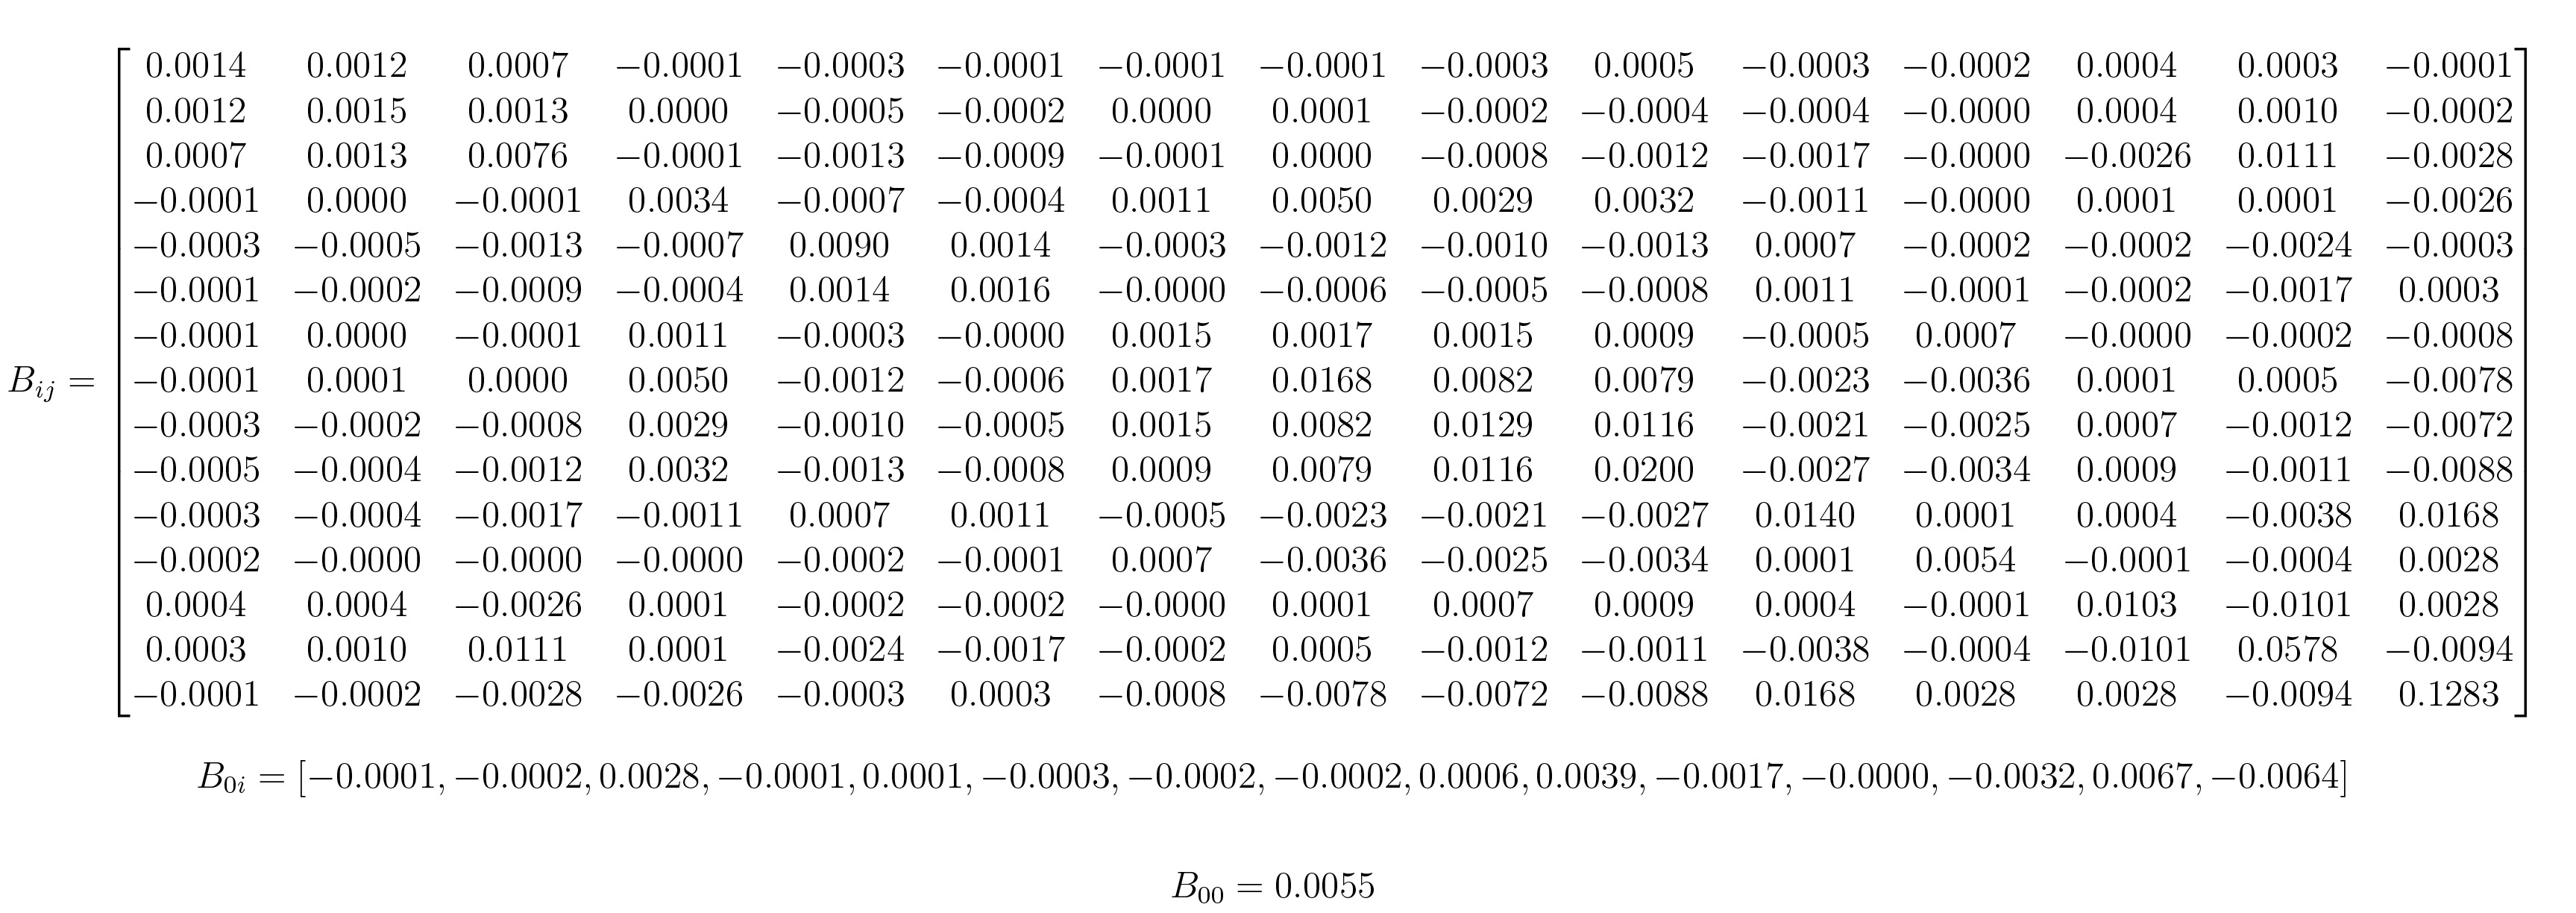 Power Systems and Evolutionary Algorithms - 15-Units System